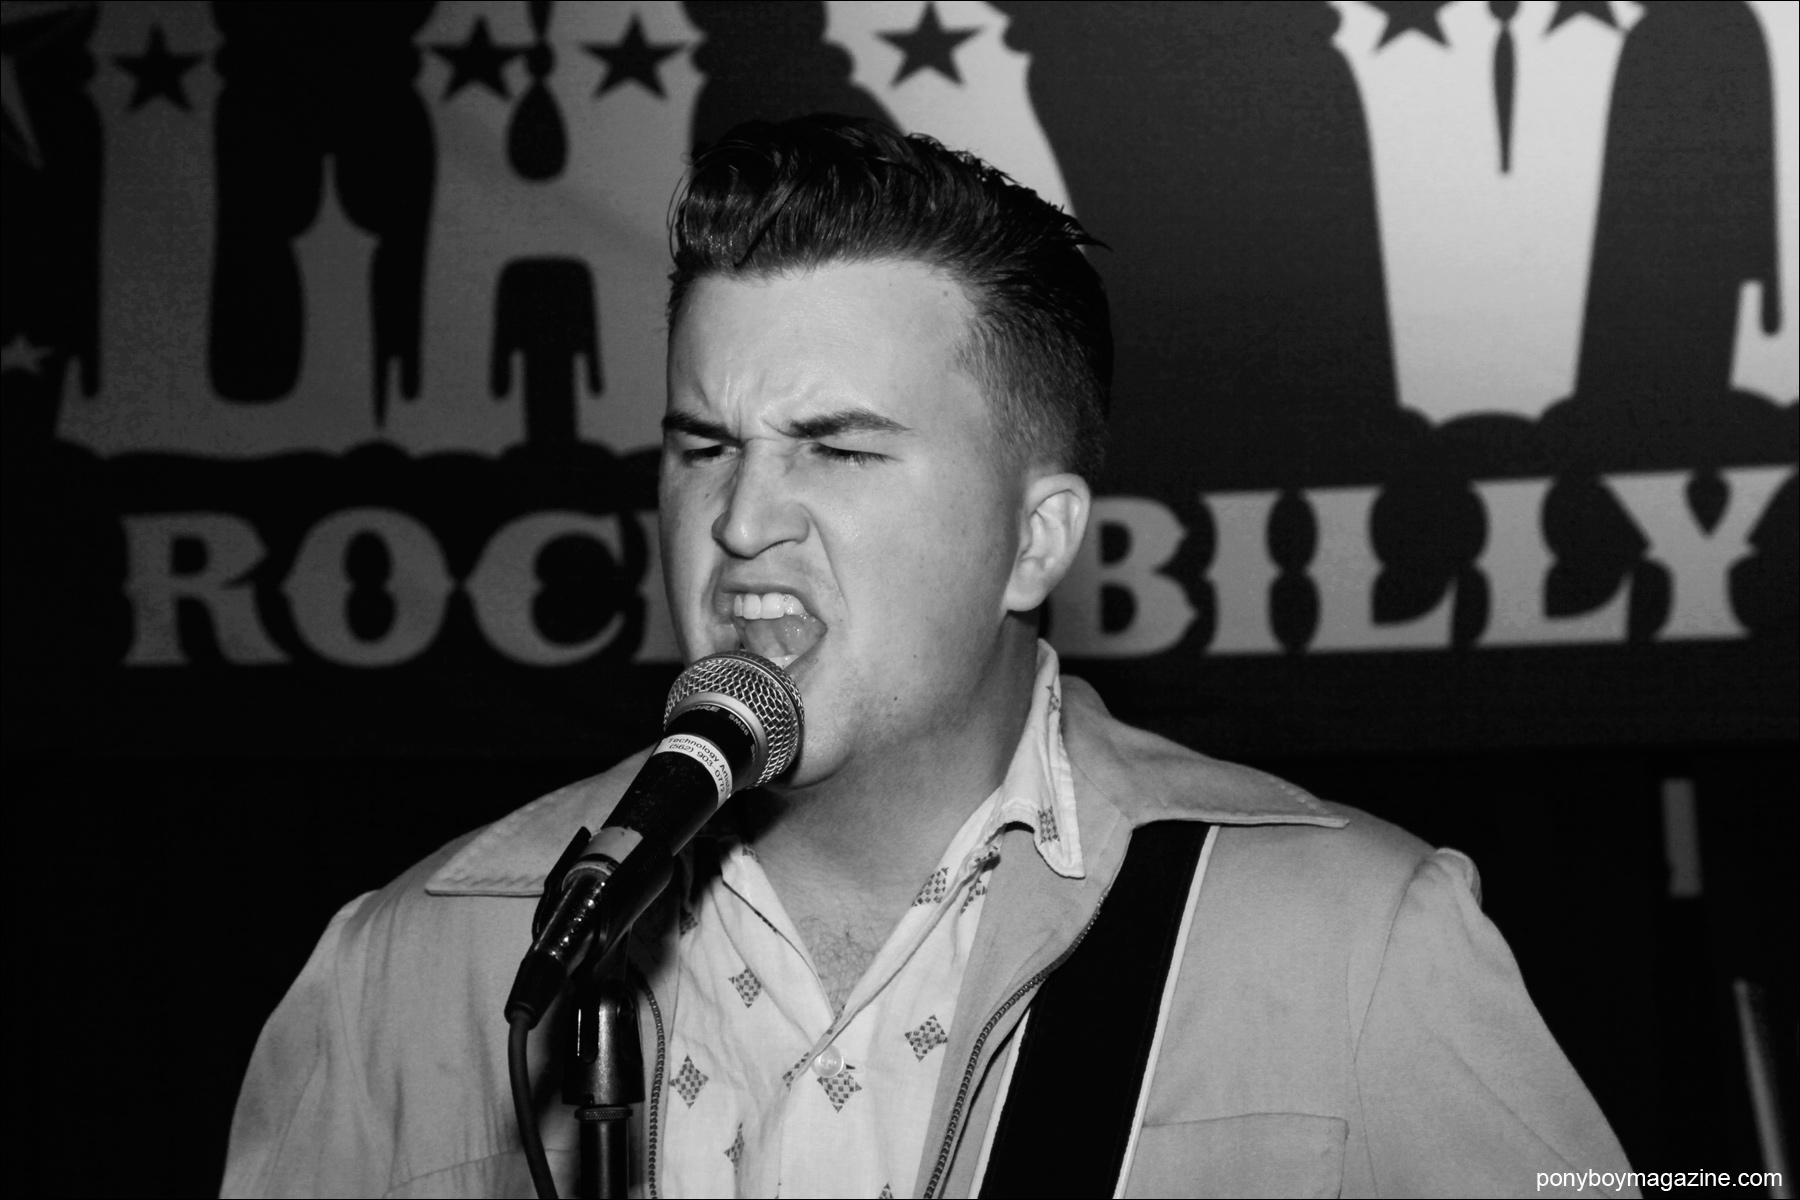 Rockabilly artist Josh Hi-Fi Sorheim performs at Viva Las Vegas 17. Photographed by Alexander Thompson for Ponyboy Magazine.